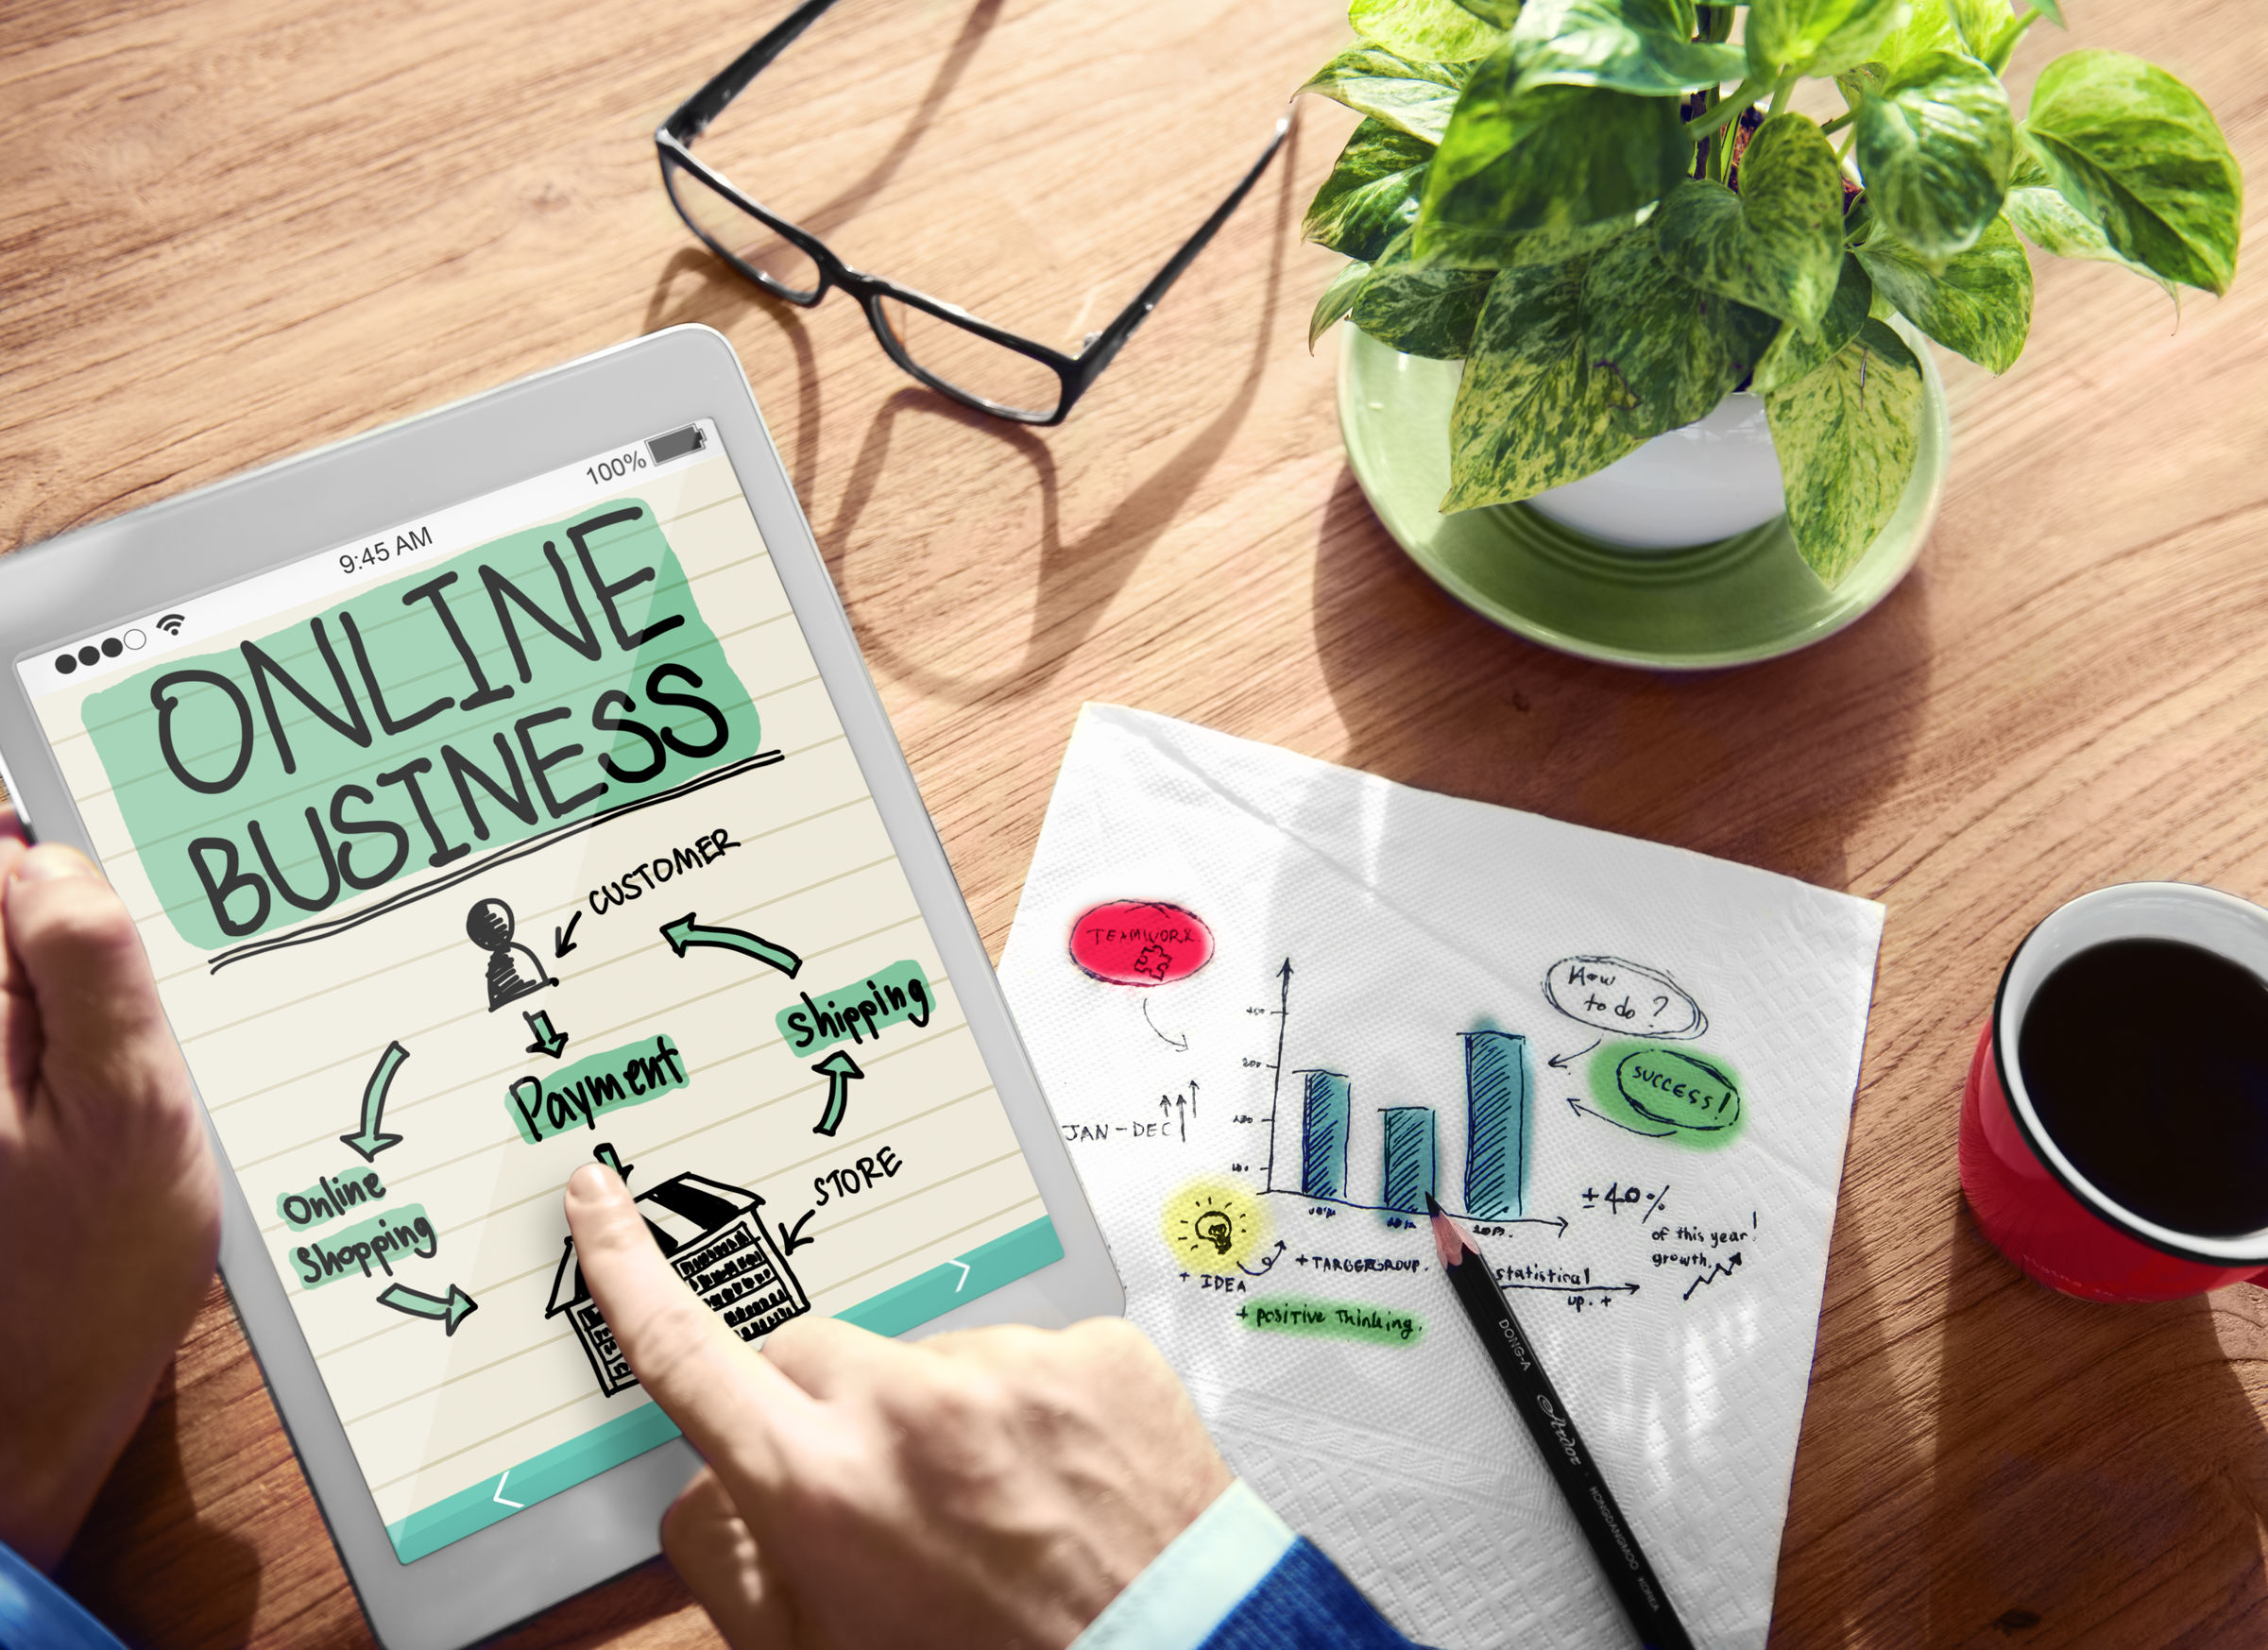 Consumer Trends for Online Businesses